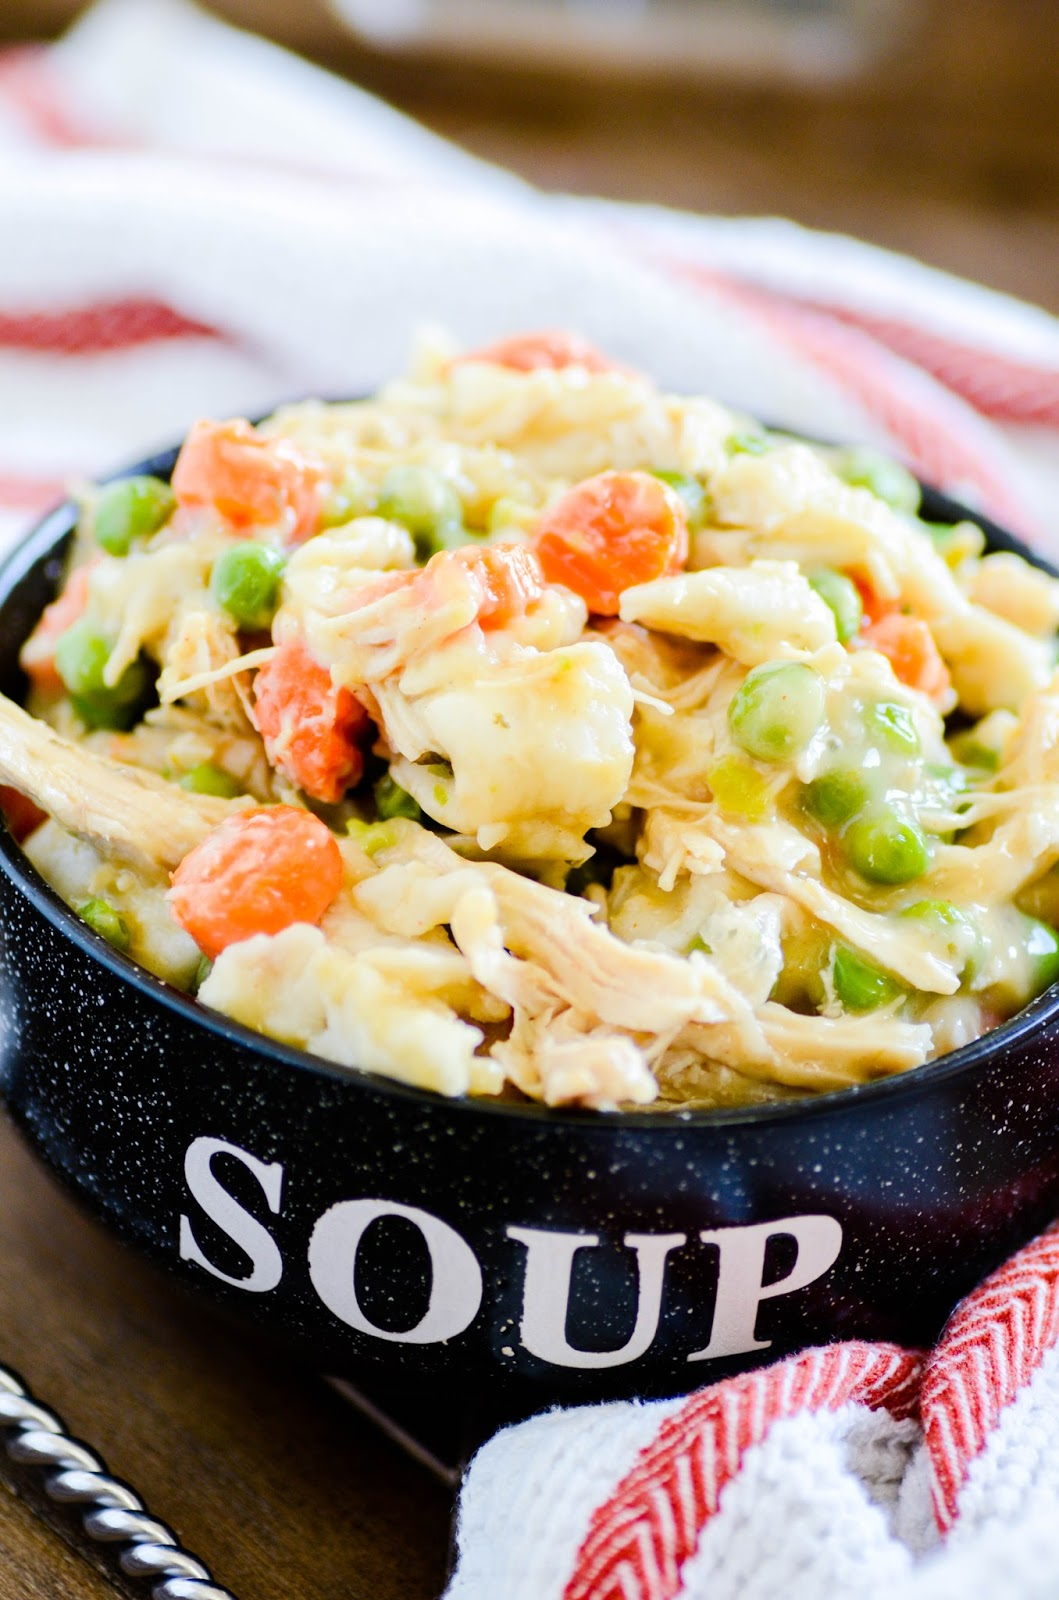 A quick and easy weeknight dinner of chicken and dumplings that the whole family will love.